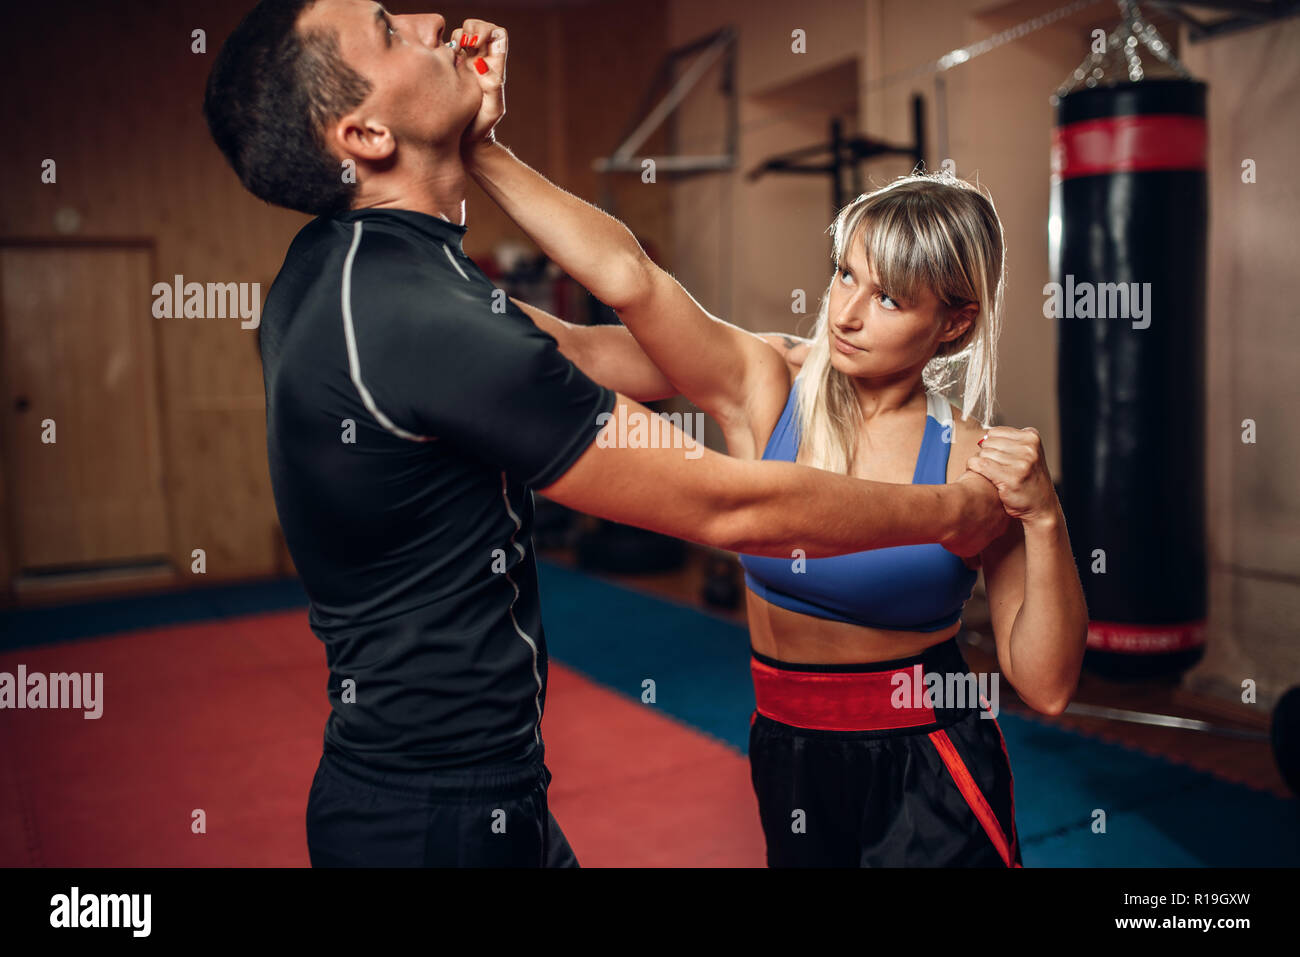 Female person on self-defense workout with male personal